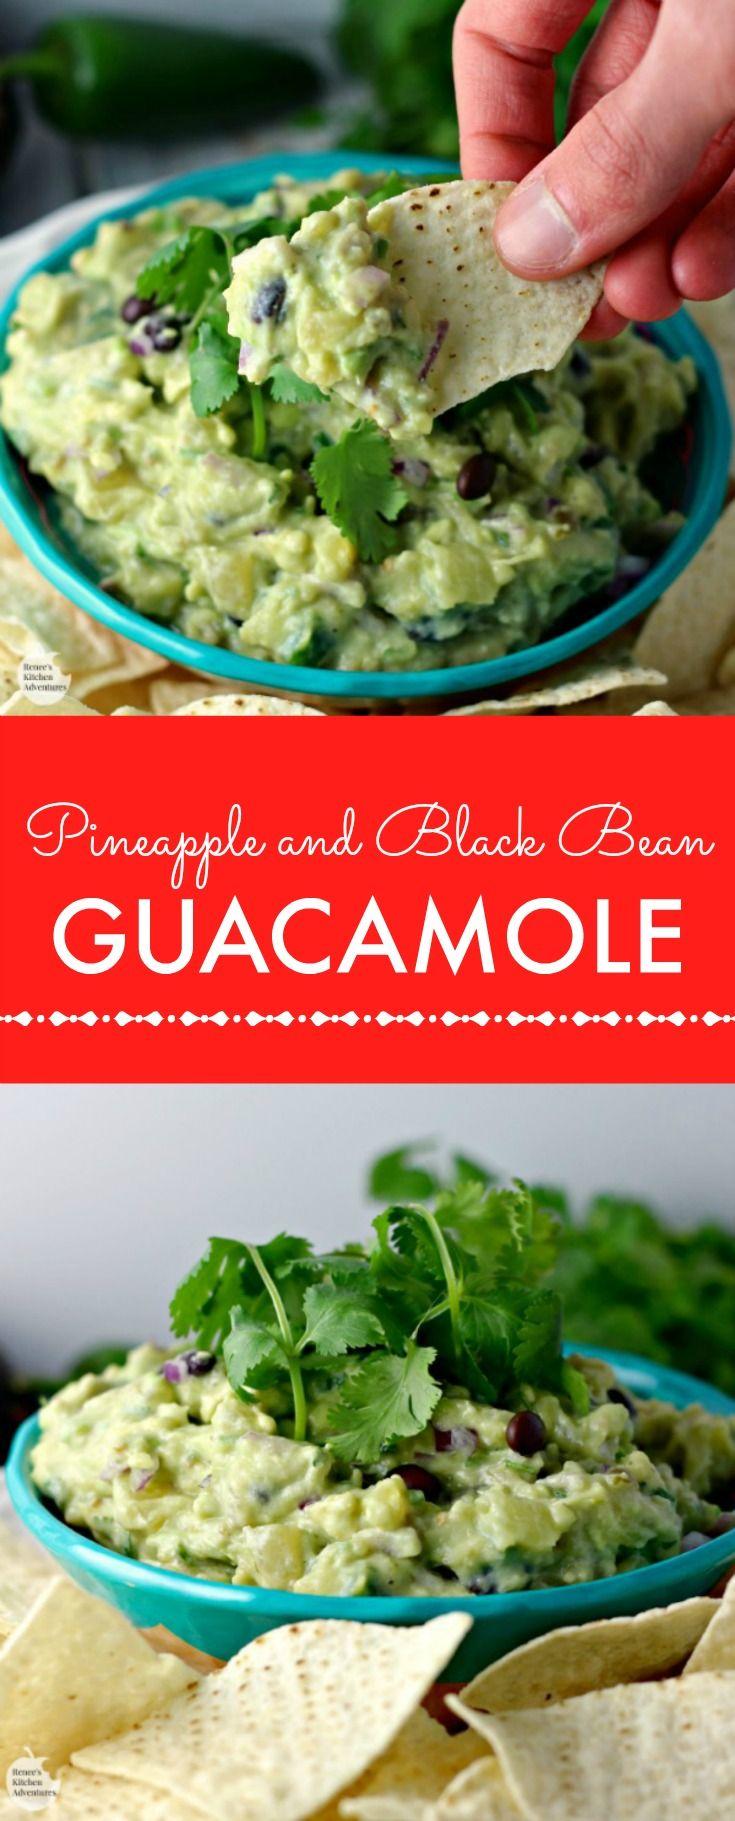 Pineapple and Black Bean Guacamole | Guacamole, Black Beans and Beans